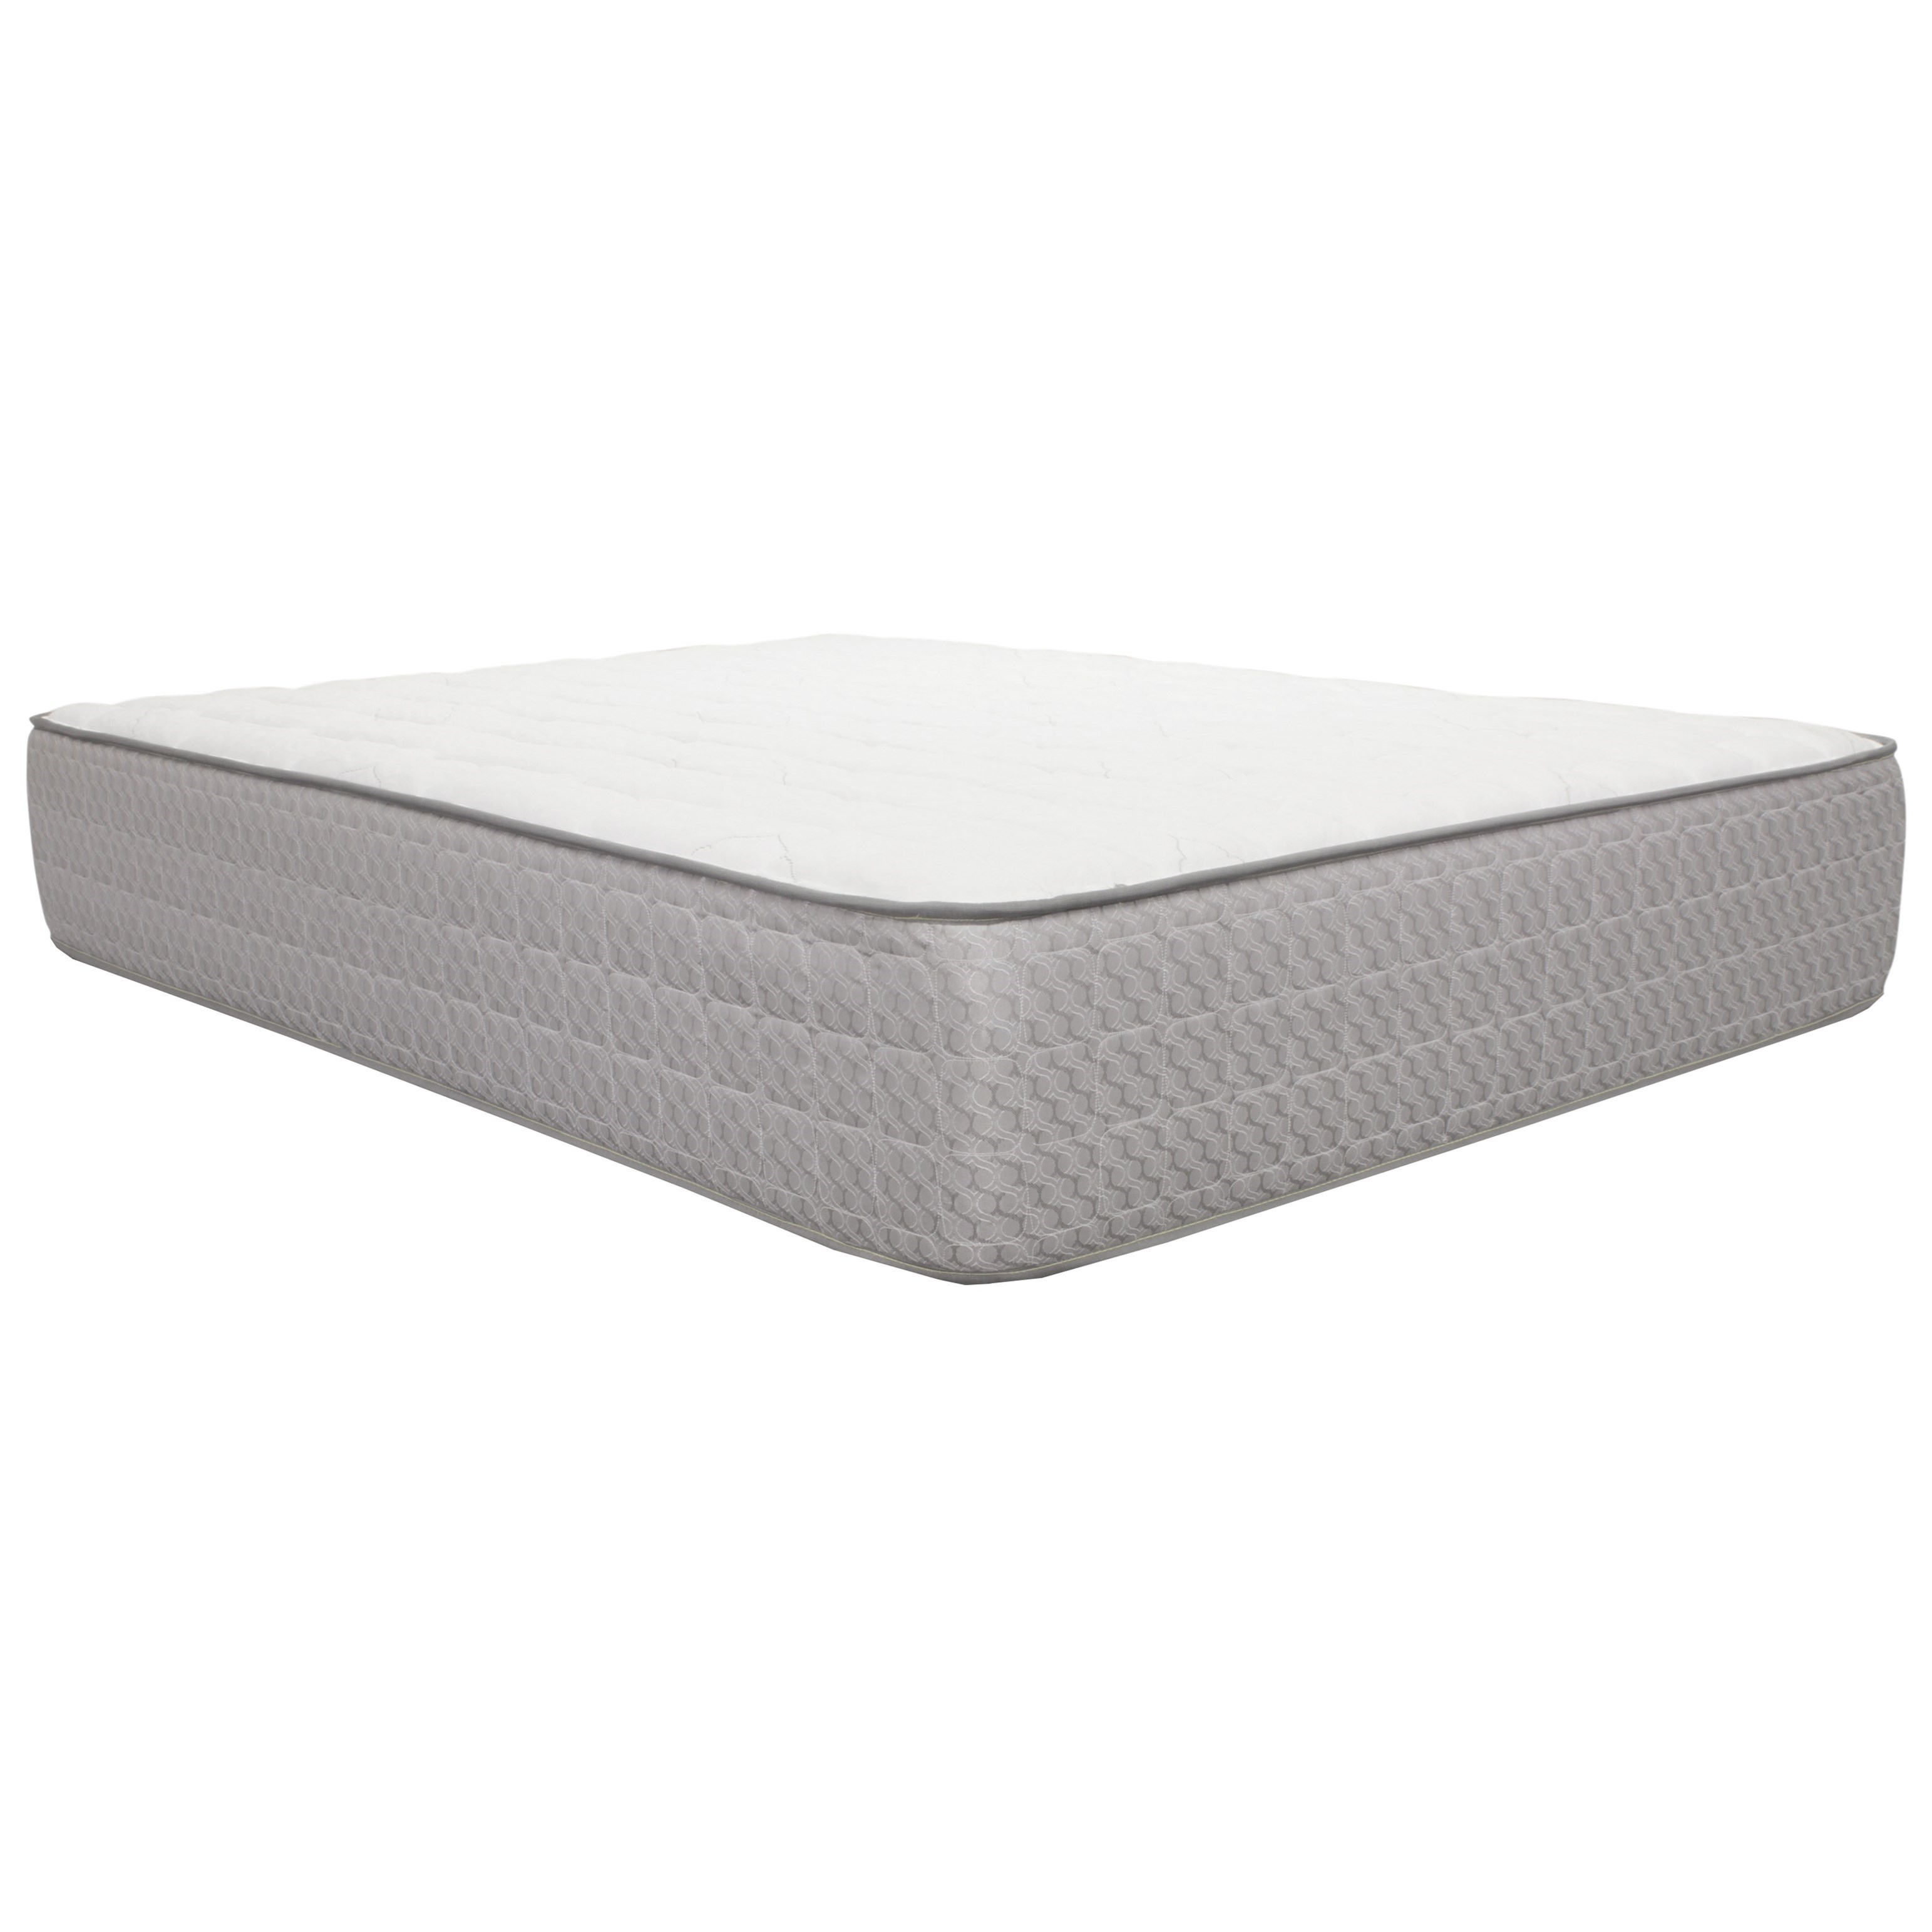 "King 13 1/2"" Extra Firm Mattress"